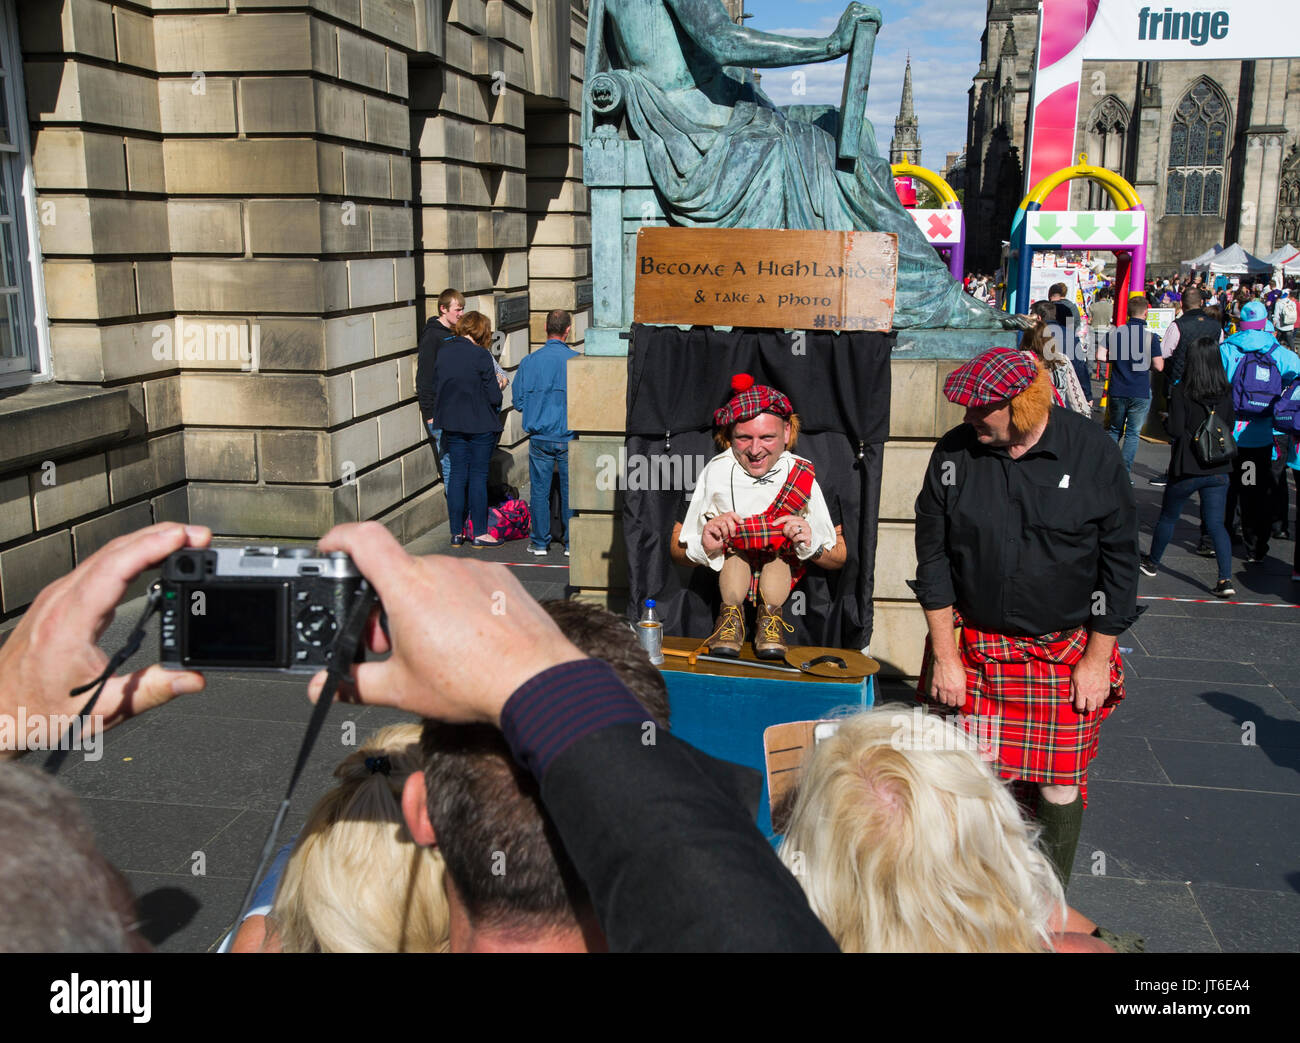 A tourist dressed up as a Scottish Highlander at a photo booth on the Royal Mile, Edinburgh. - Stock Image